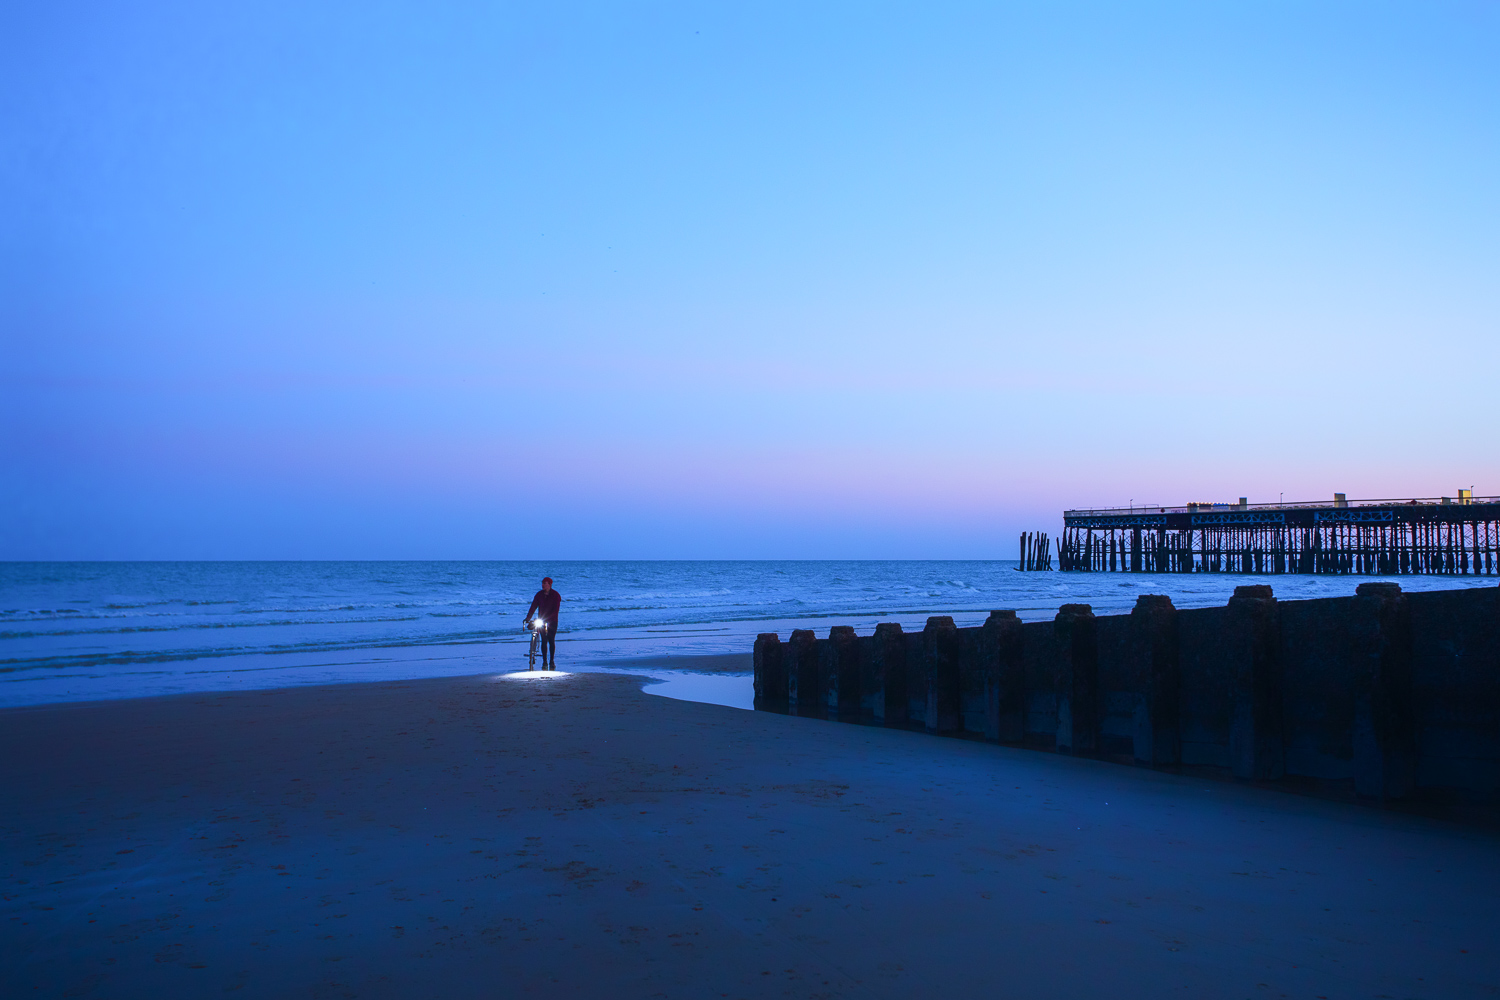 Man walking bicycle on beach at dusk, headlight glowing, pier in background